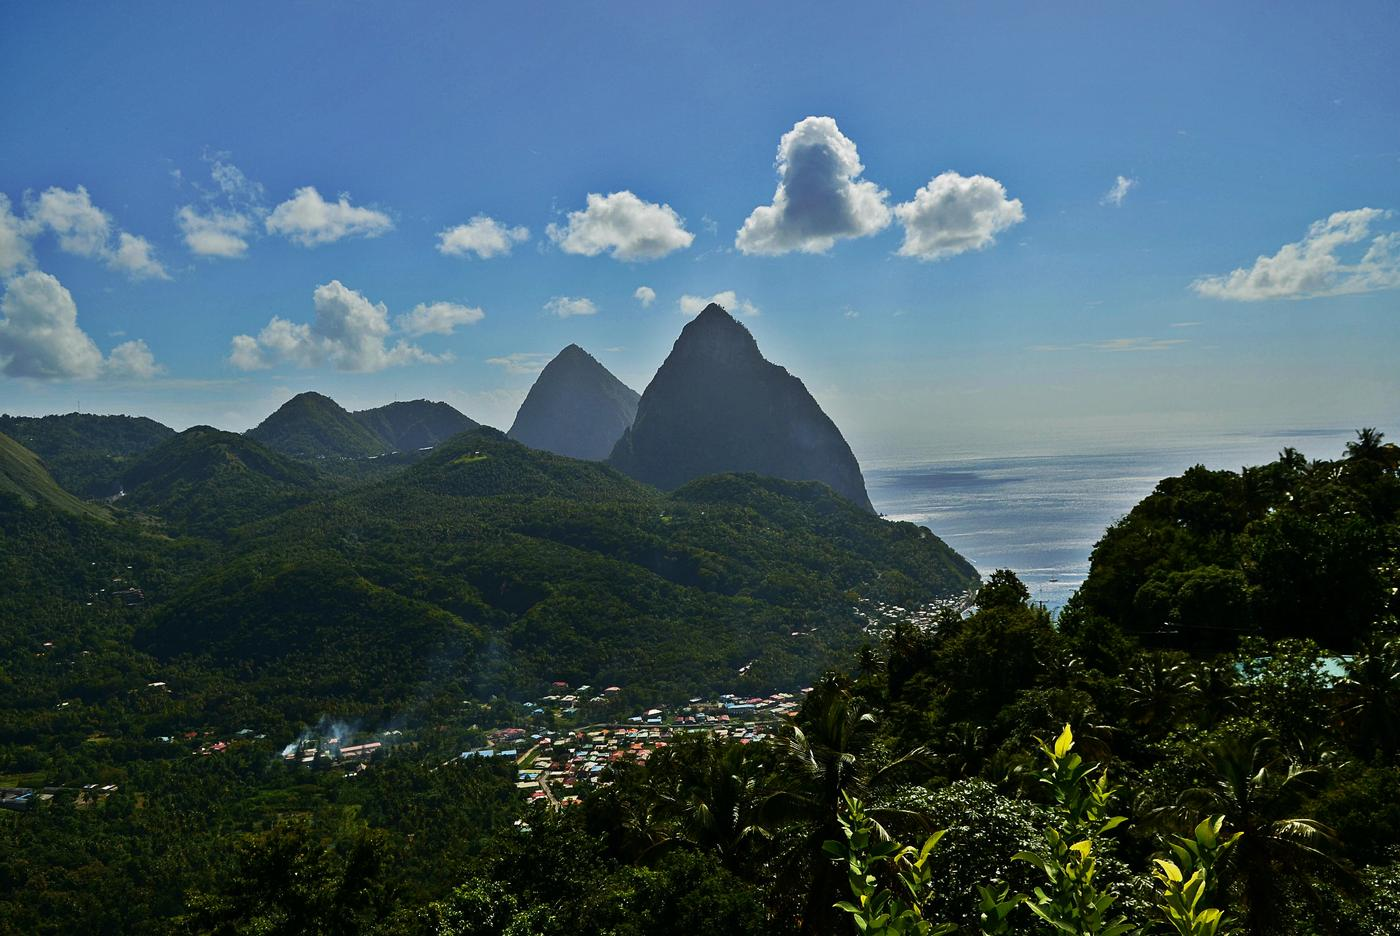 St Lucia Adventure Tours: Hike the Pitons